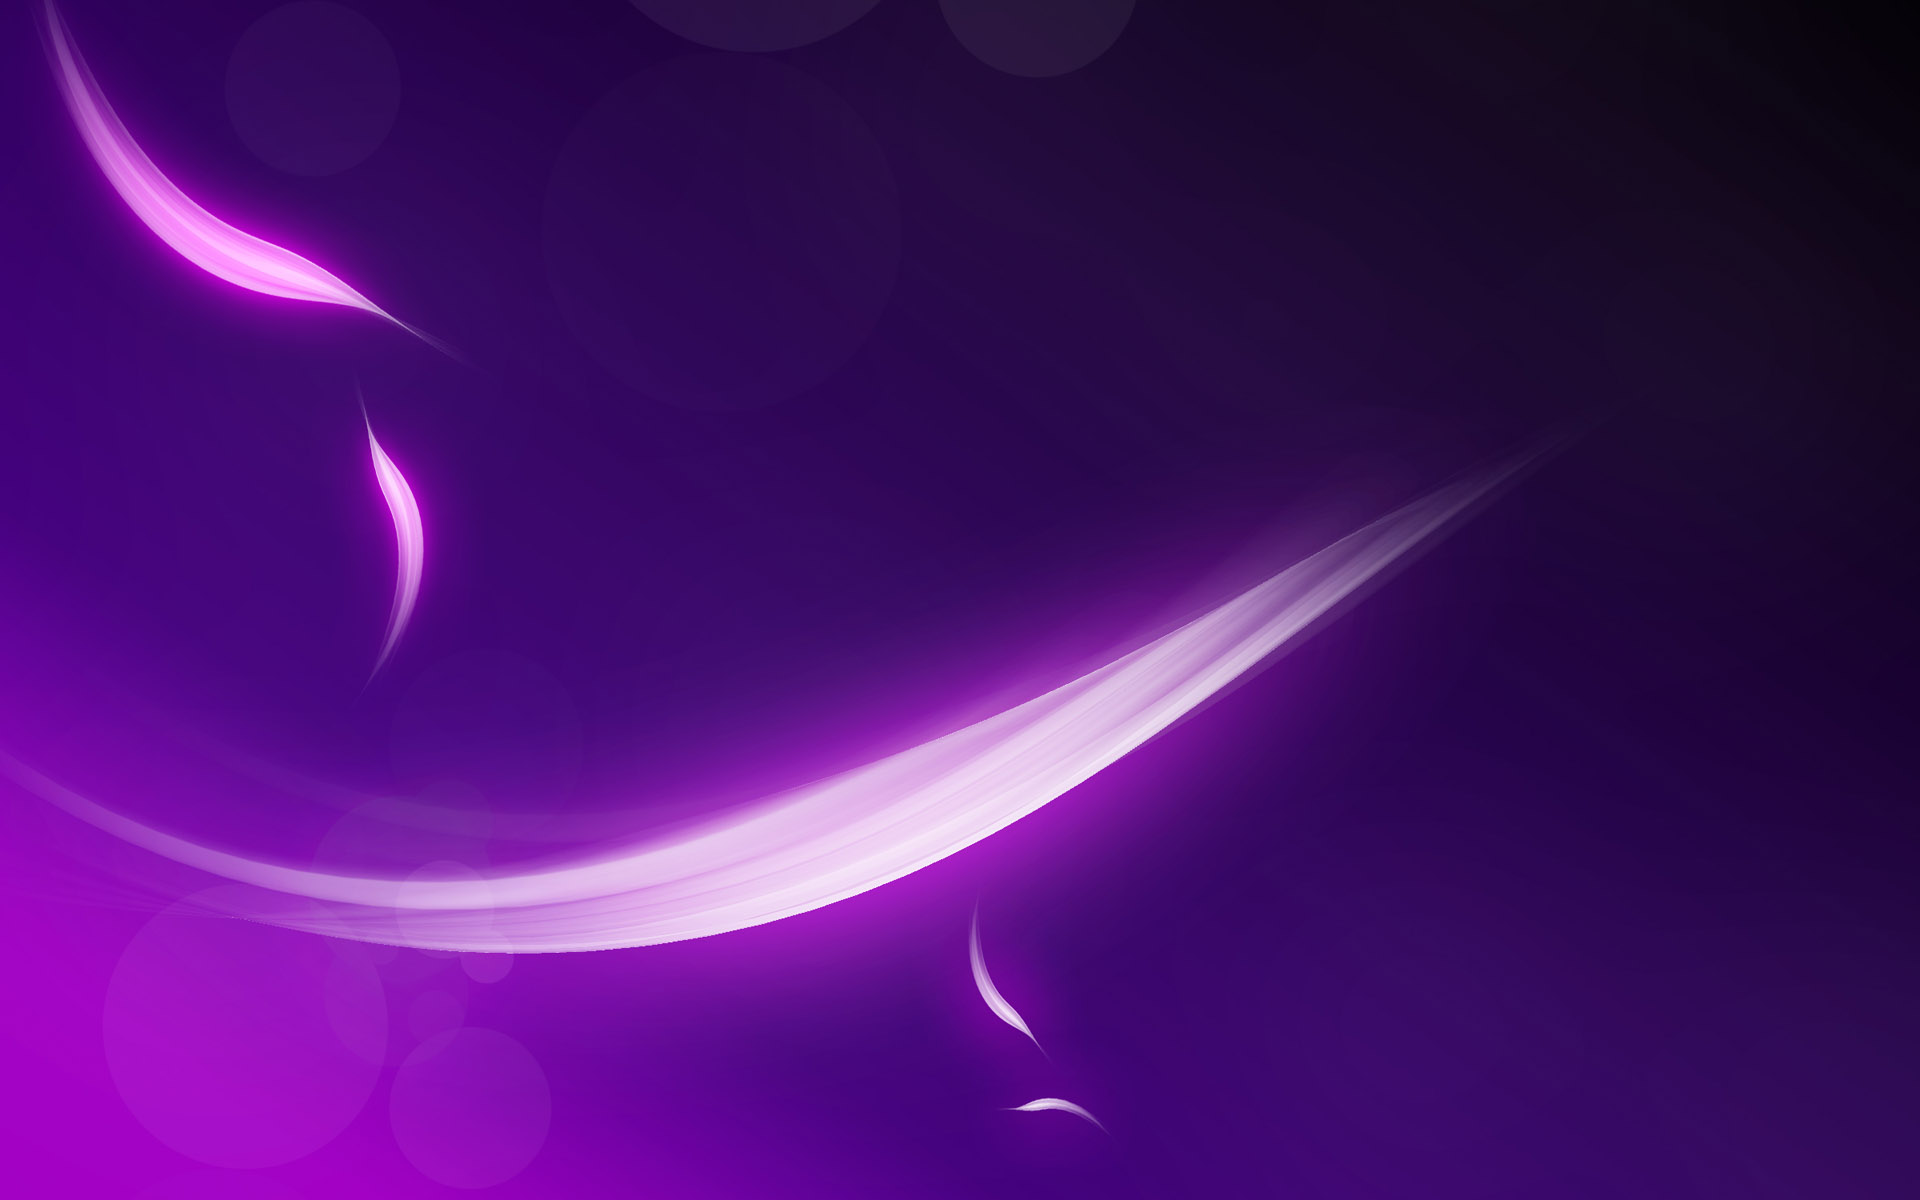 Abstract Wallpaper Widescreen 2693 Hd Wallpapers in Abstract 1920x1200